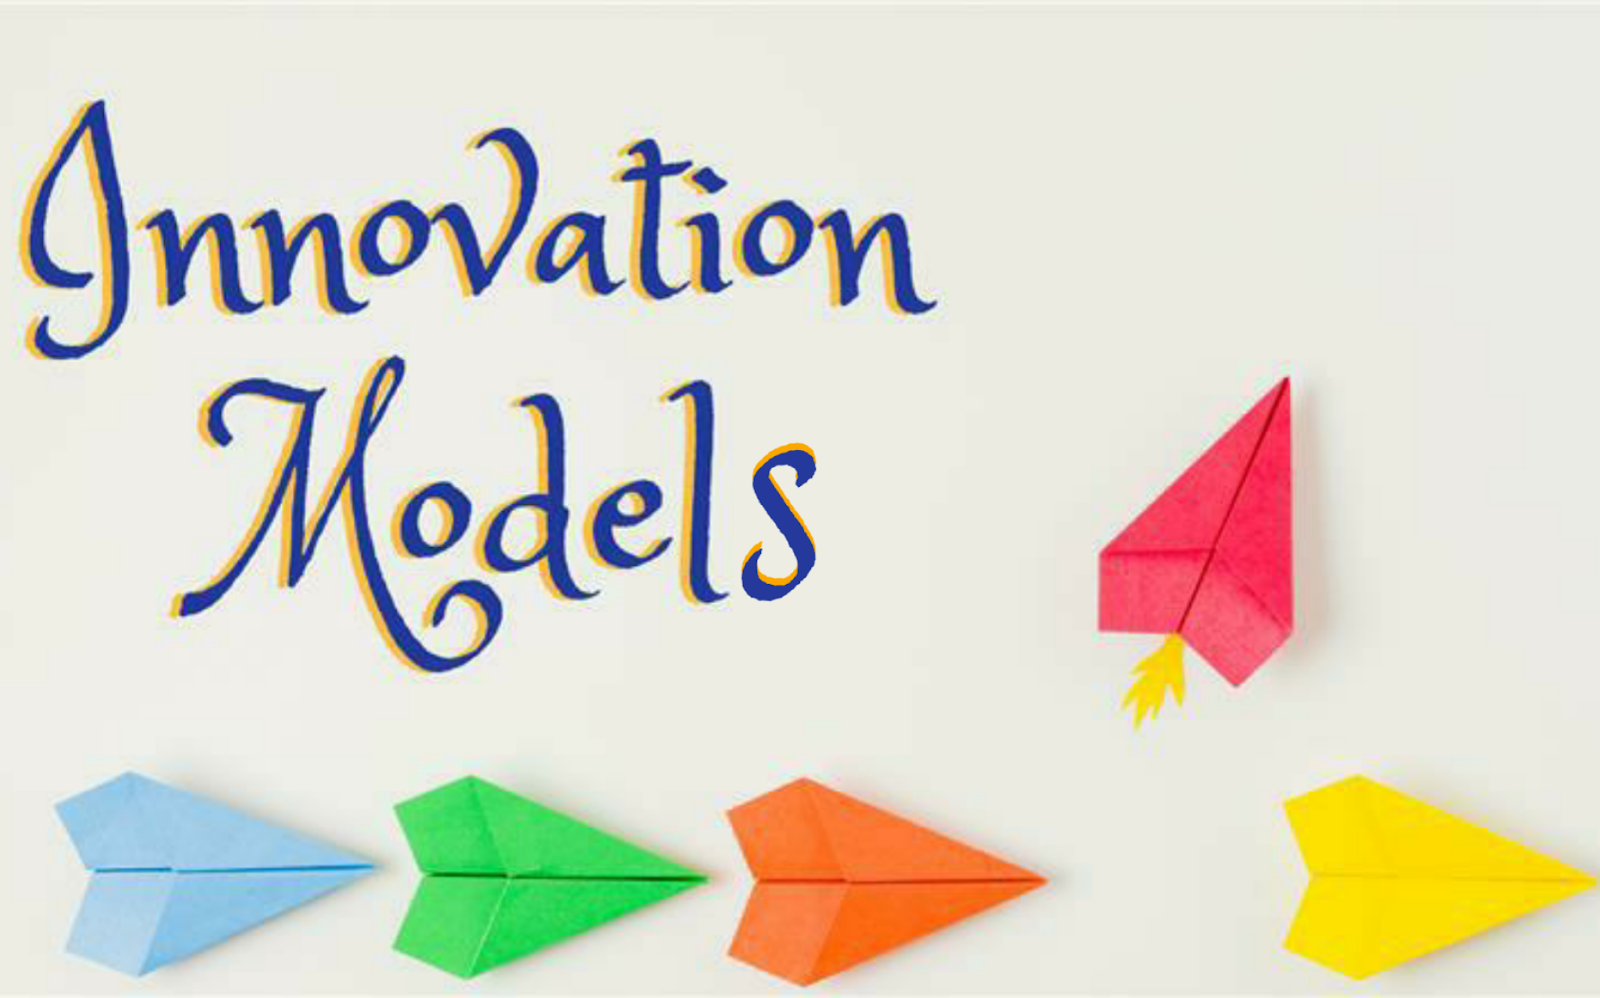 innovation business models examples, models of the innovation process, innovation process models, innovation models, models of innovation, innovation business models,